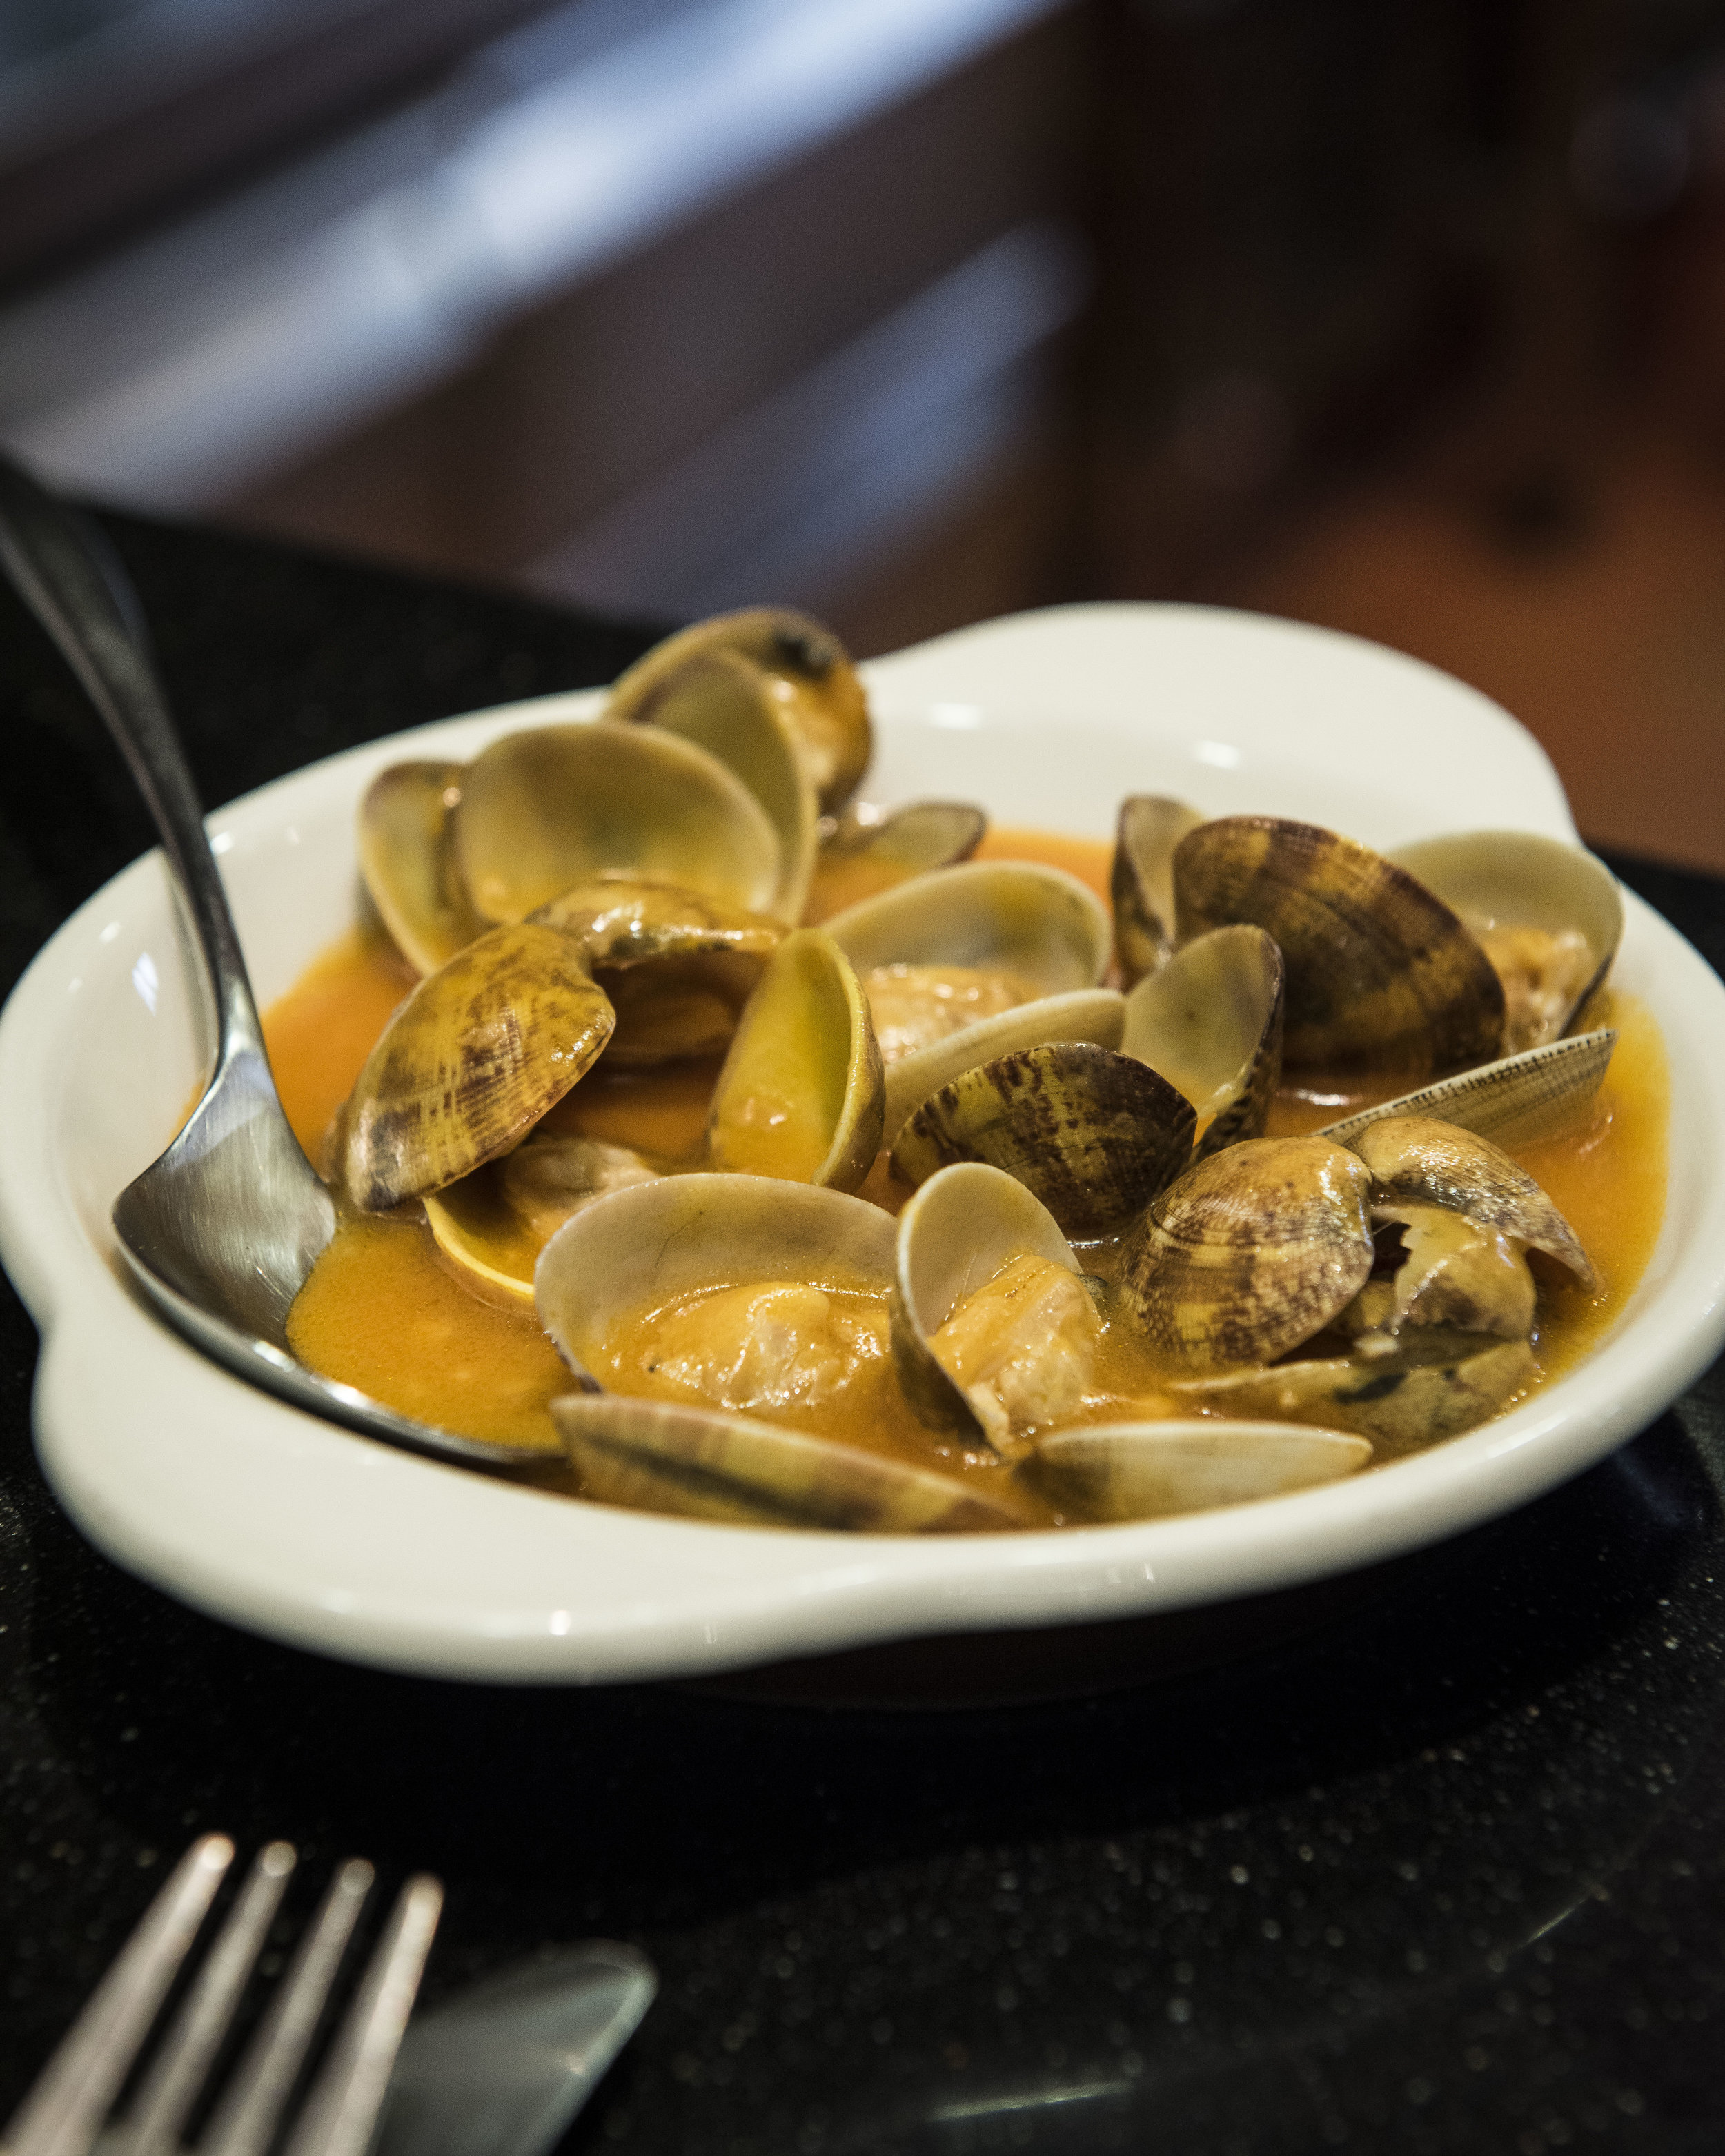 Clams at El Tast de Joan Noi, Barcelona